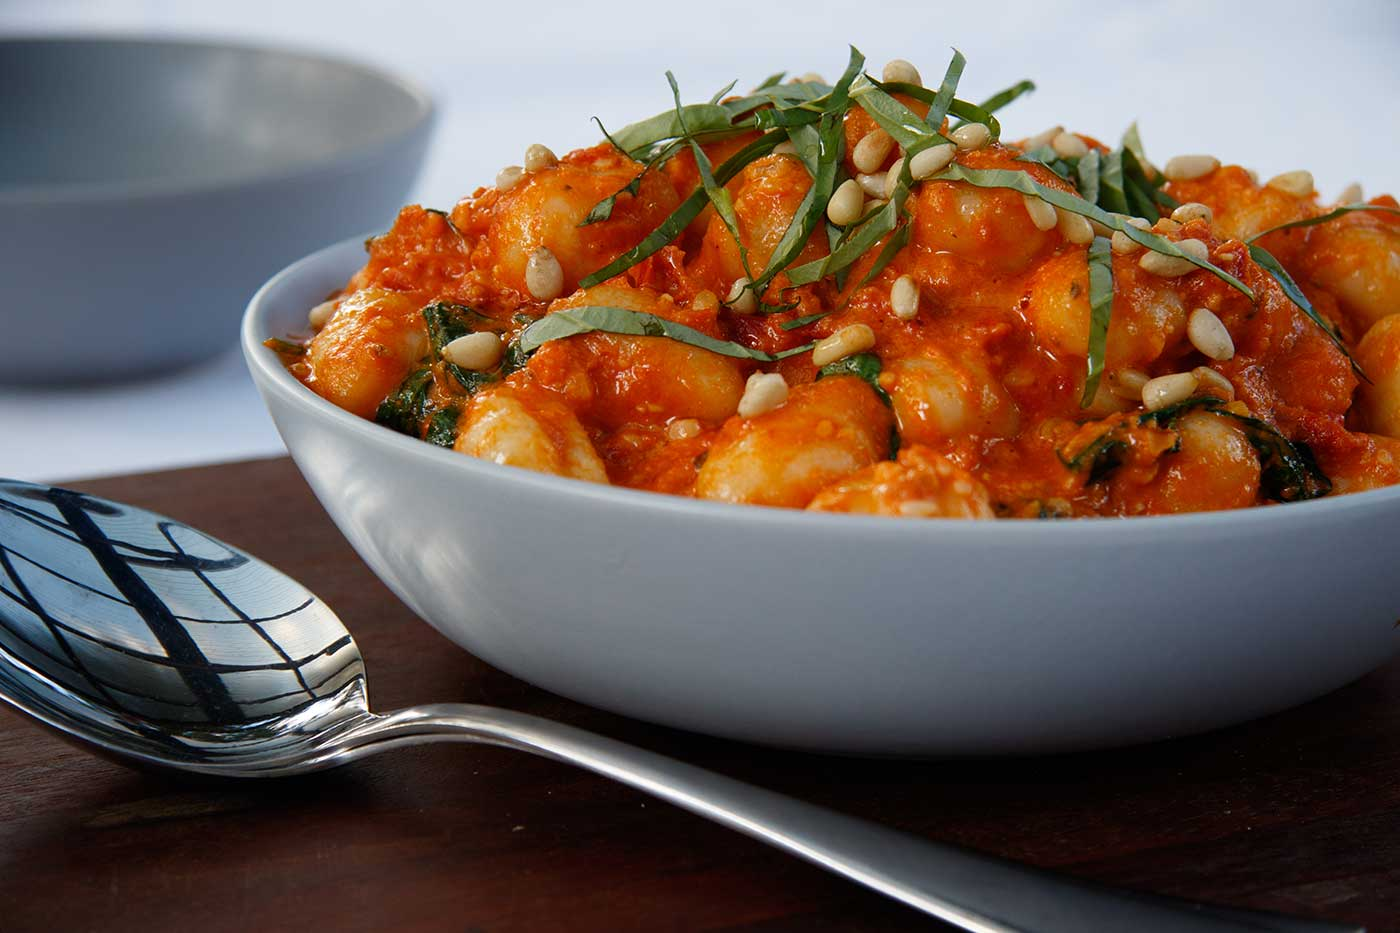 Gnocchi-with-Creamy-Semi-Dried-Tomato-and-Pine-Nut-Sauce-Thermomix-Recipe